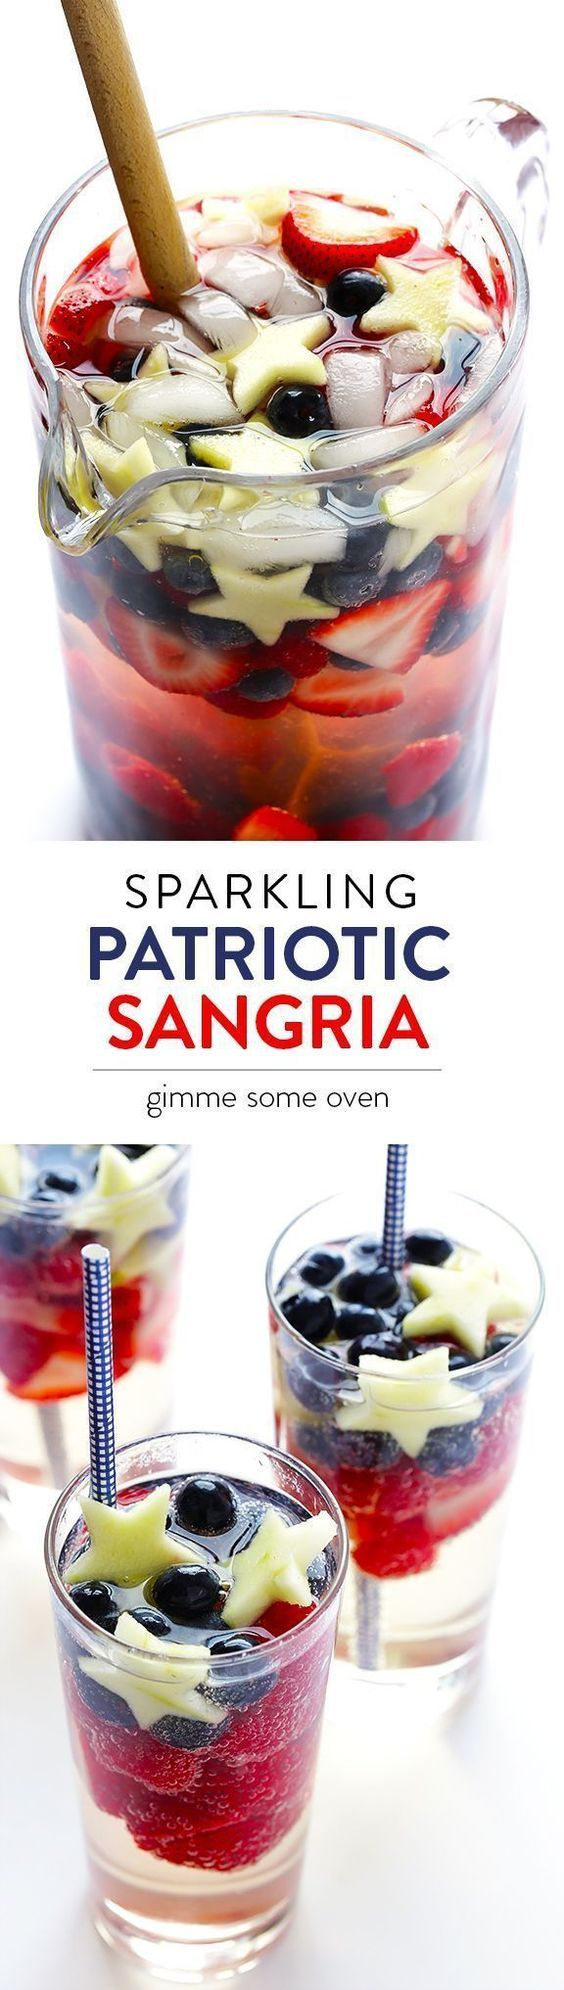 This Sparkling Red, White & Blue Sangria is quick and easy to make, and it's always the hit of a party!   http://gimmesomeoven.com